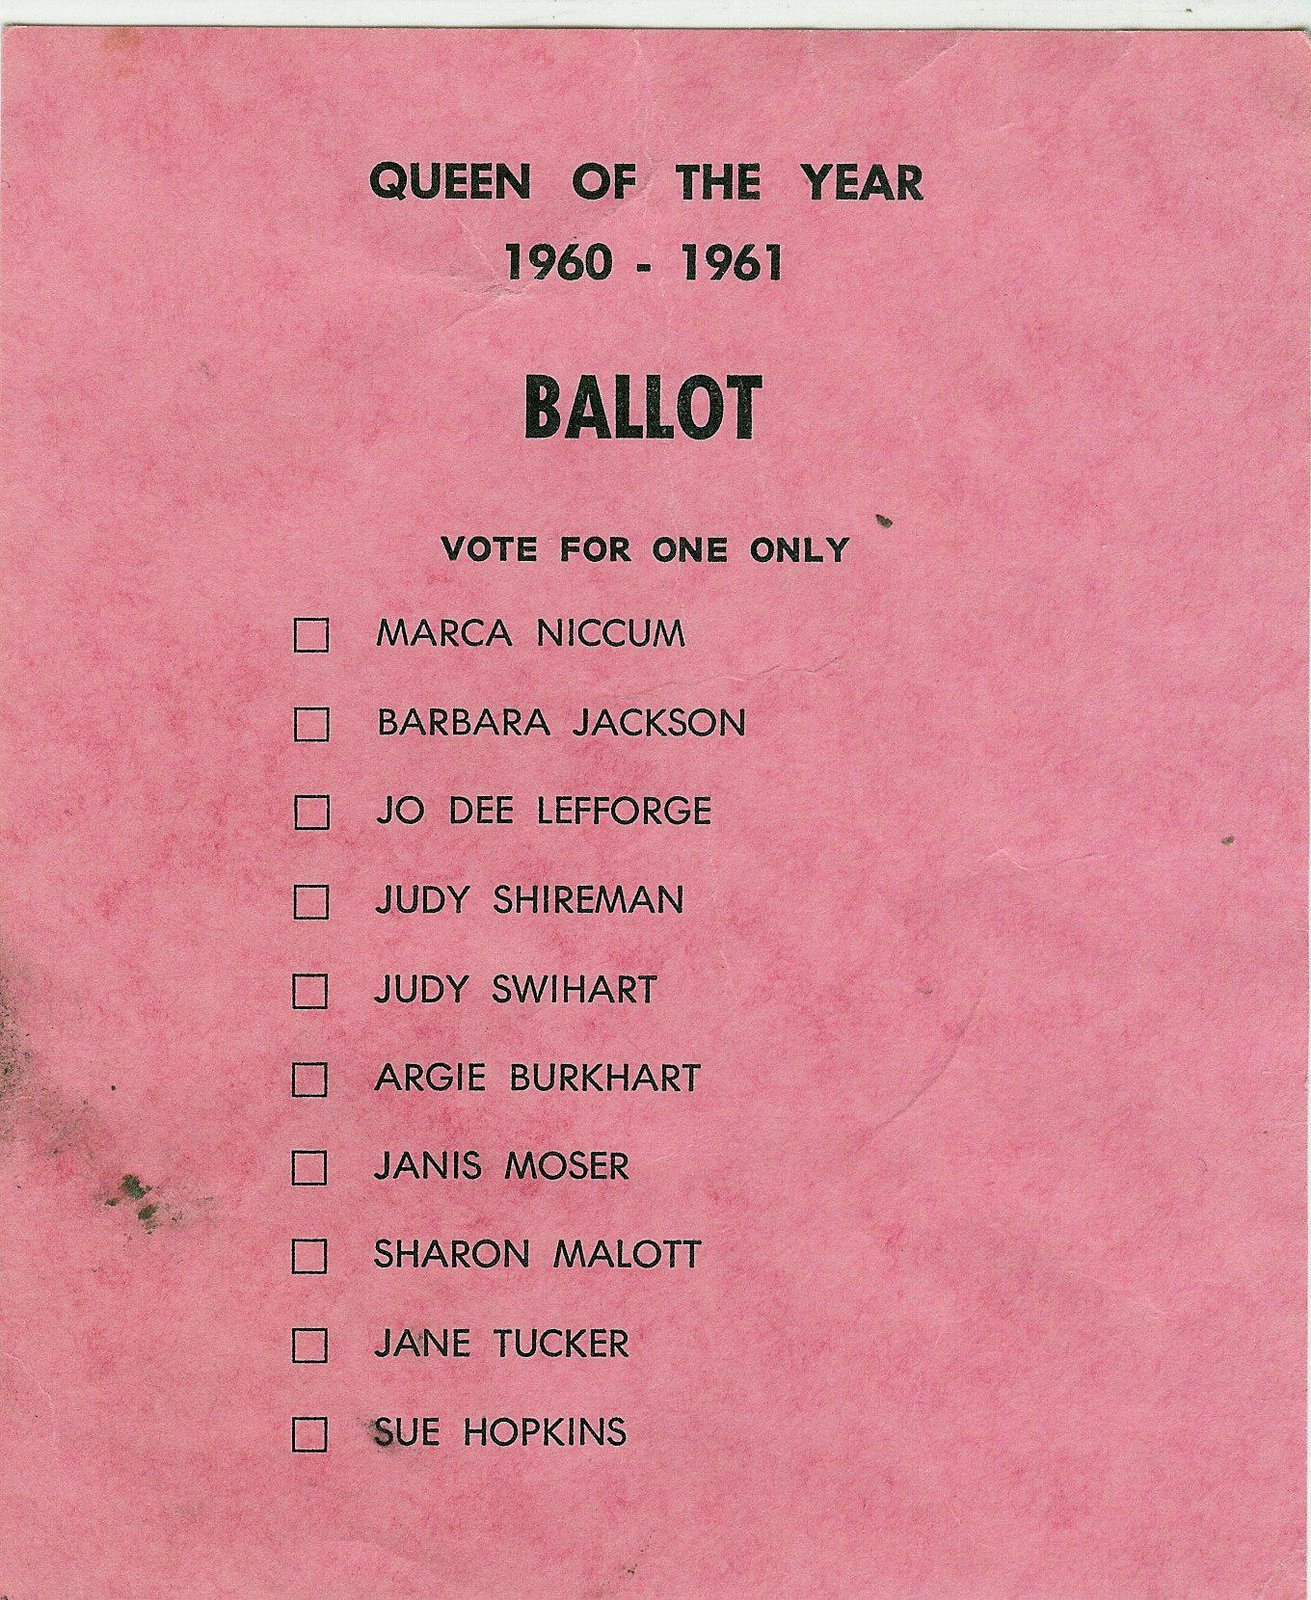 [Queen+of+the+Year+1960+Ballot]